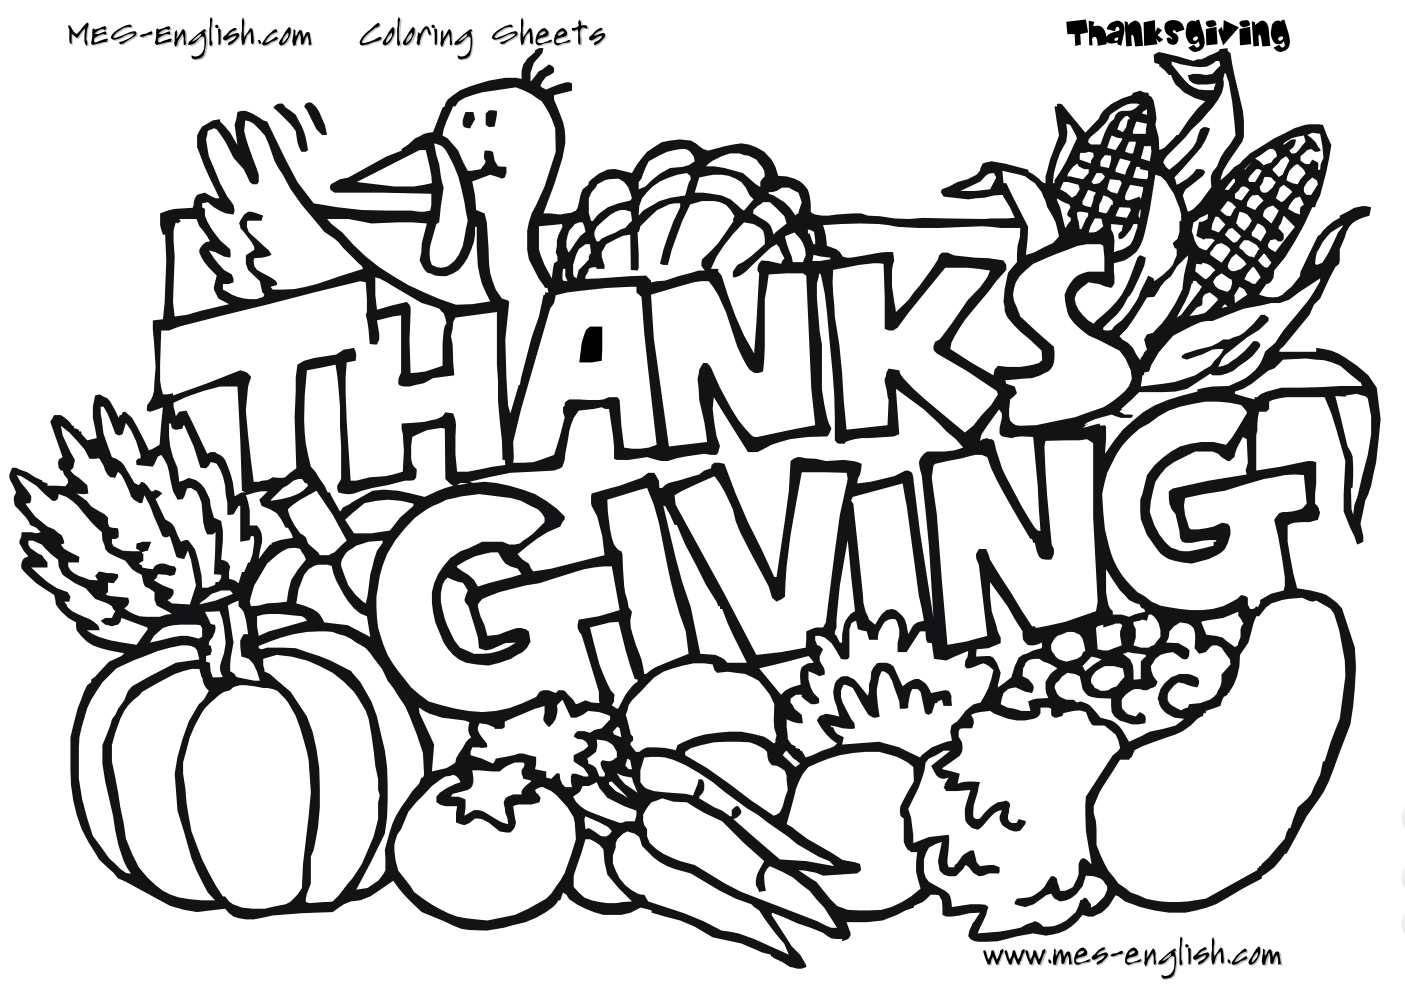 8 Free Thanksgiving Printables For Your Home And Family - Free Printable Thanksgiving Turkey Template